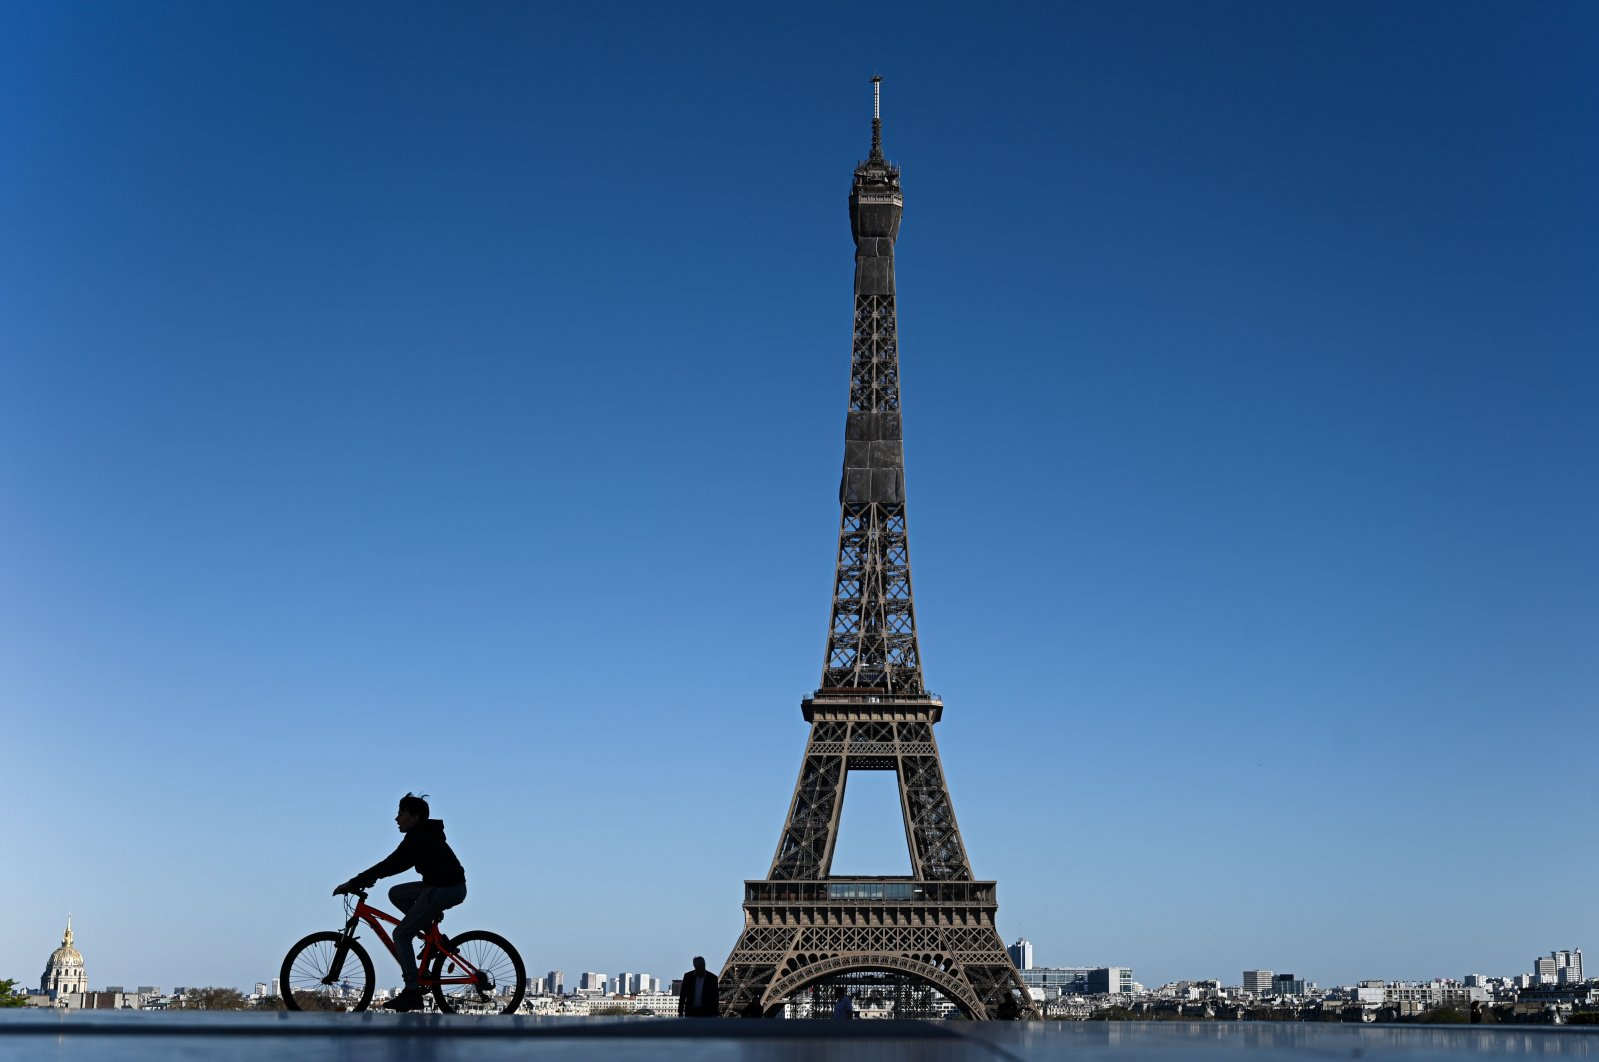 A boy rides his bicycle past the Eiffel Tower in Paris on Sunday, April 5, 2020, the 20th day of a lockdown in France aimed at curbing the spread of COVID-19. (AFP Photo)